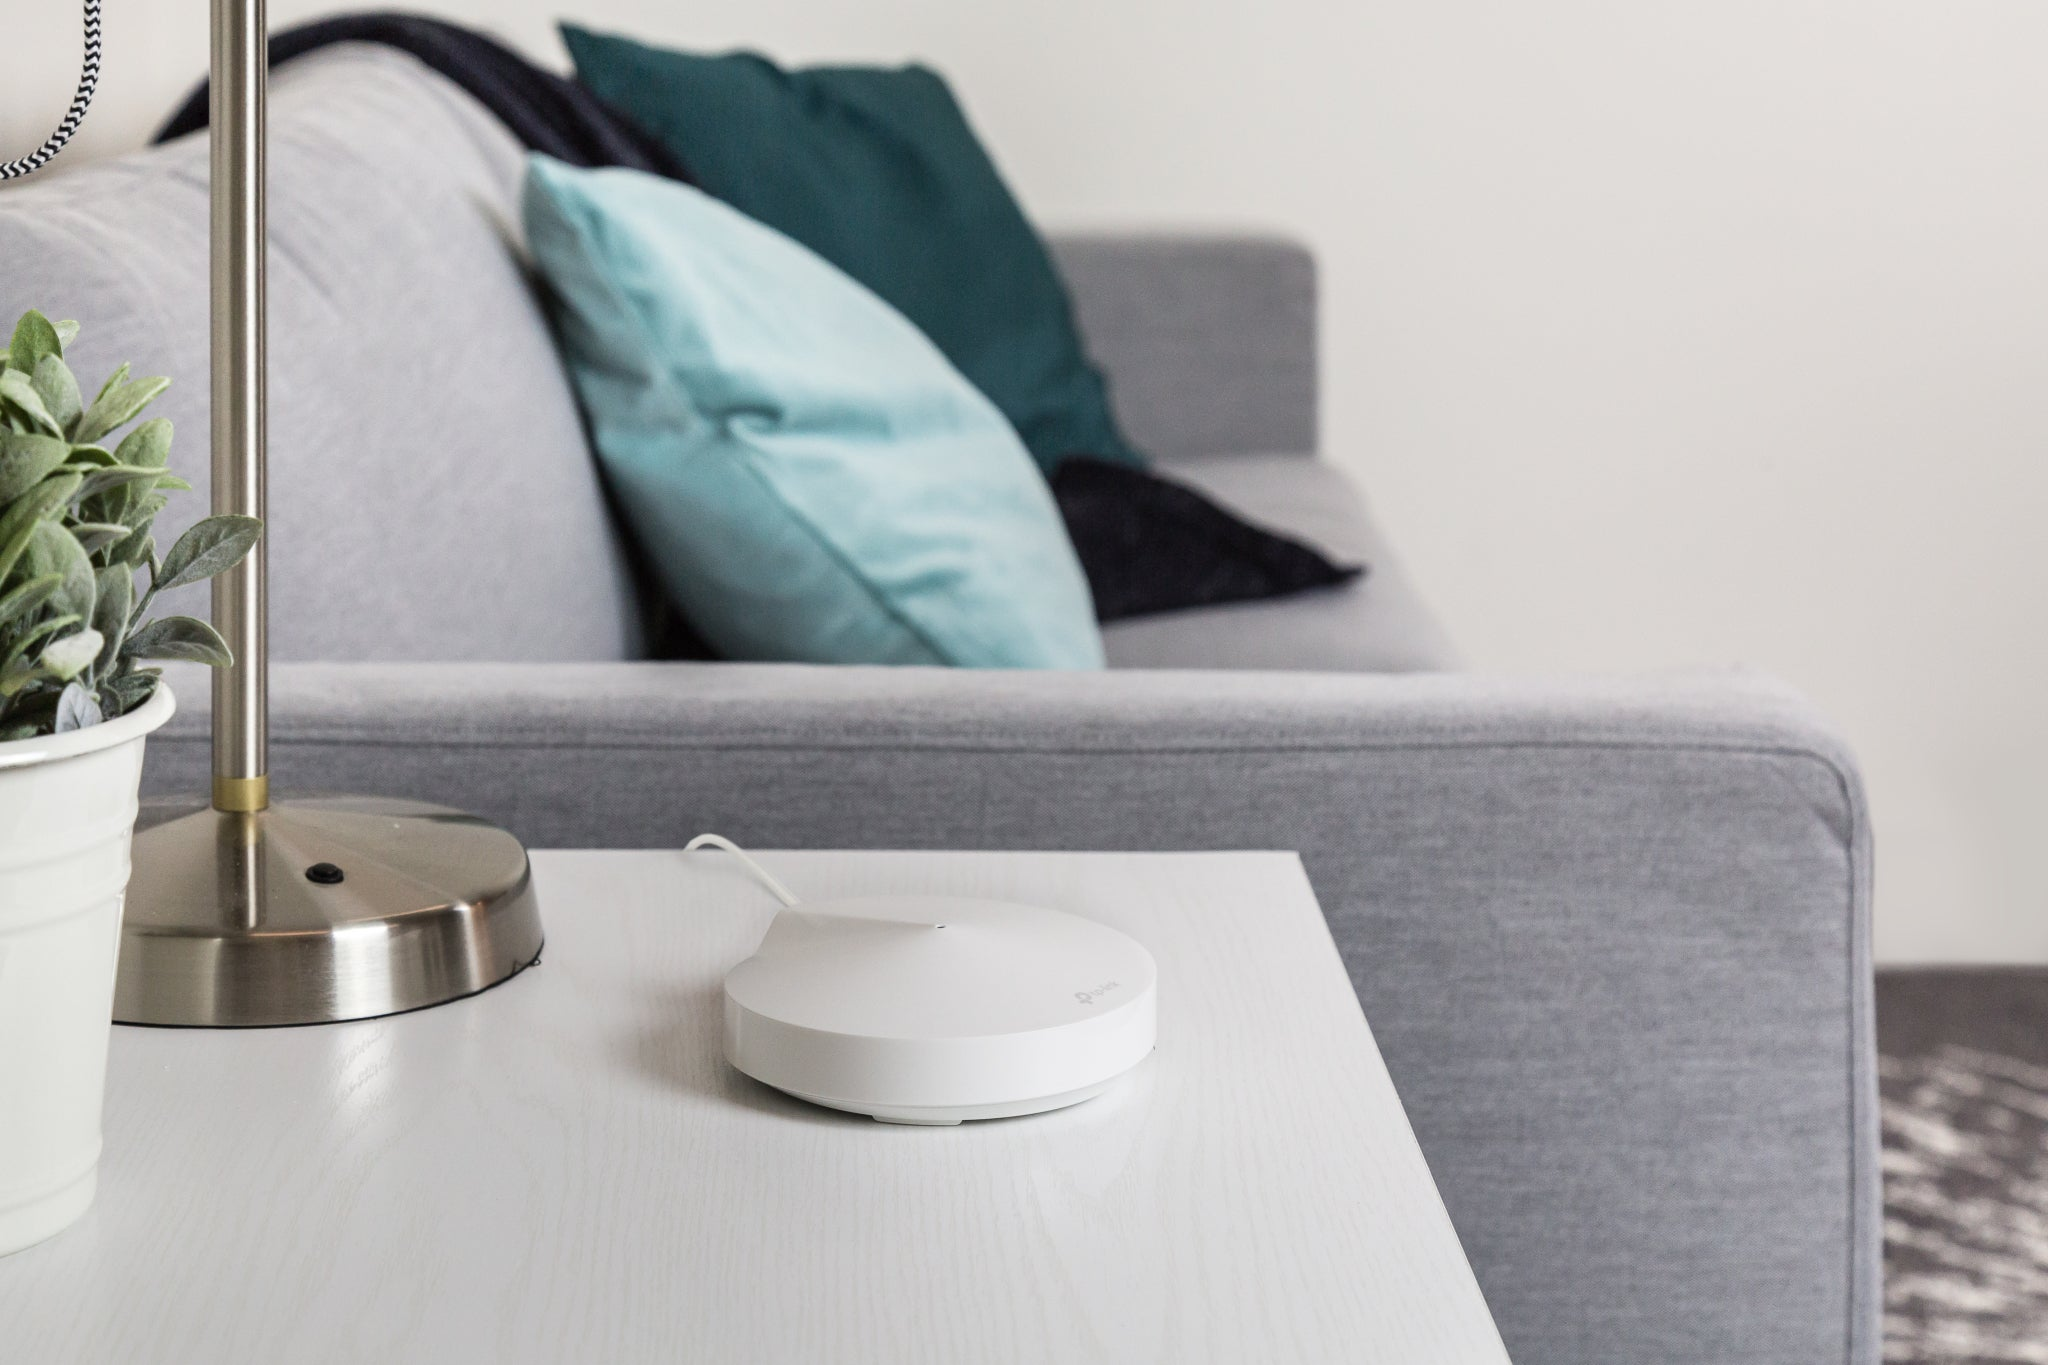 A new Wi-Fi system could help your home network, if companies sign on